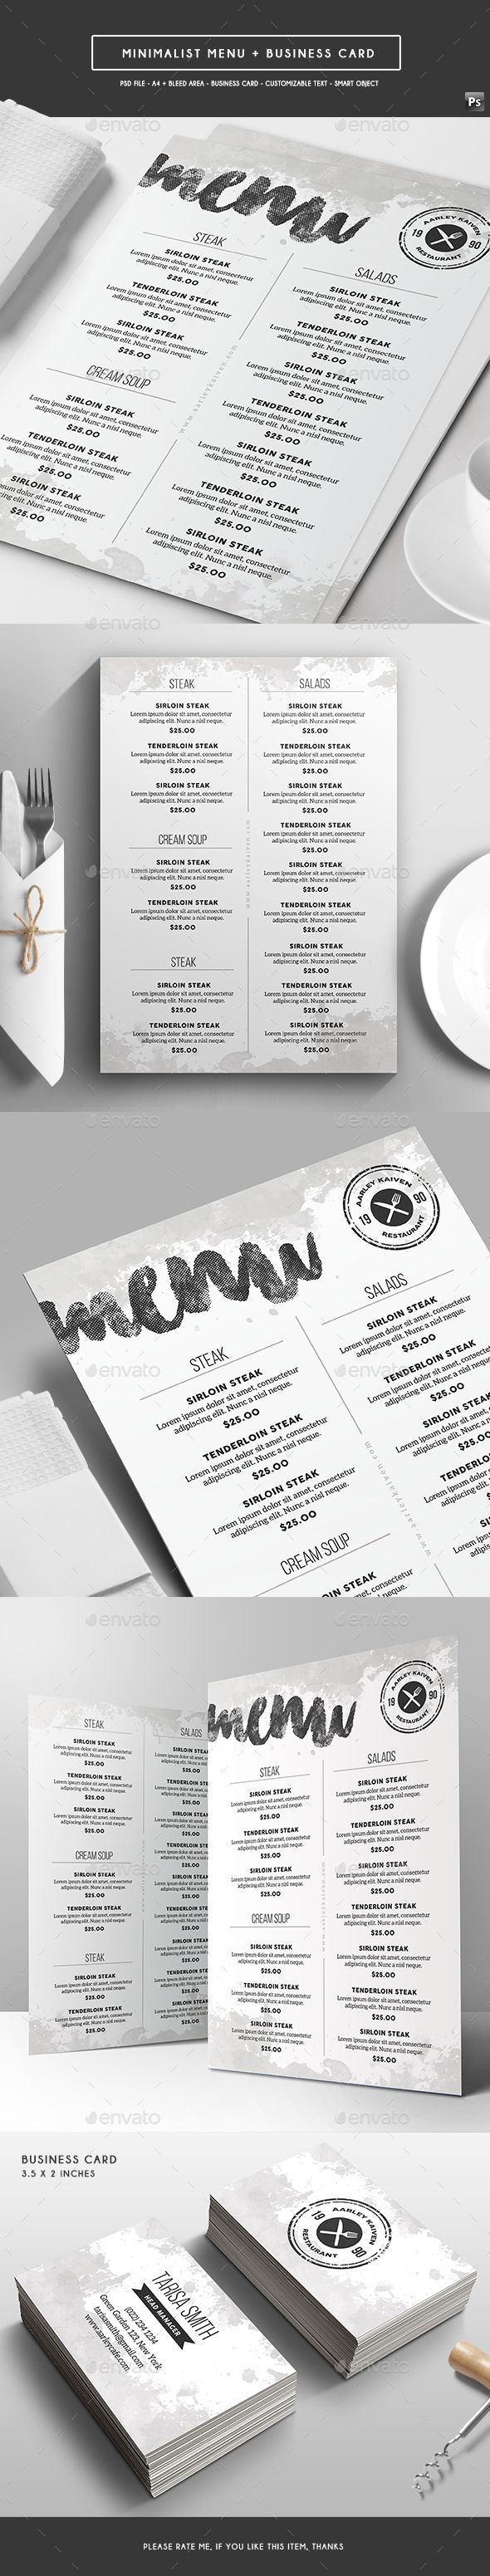 Minimalist Menu + Business Card  — PSD Template #black #fast food #chicken…                                                                                                                                                                                 More